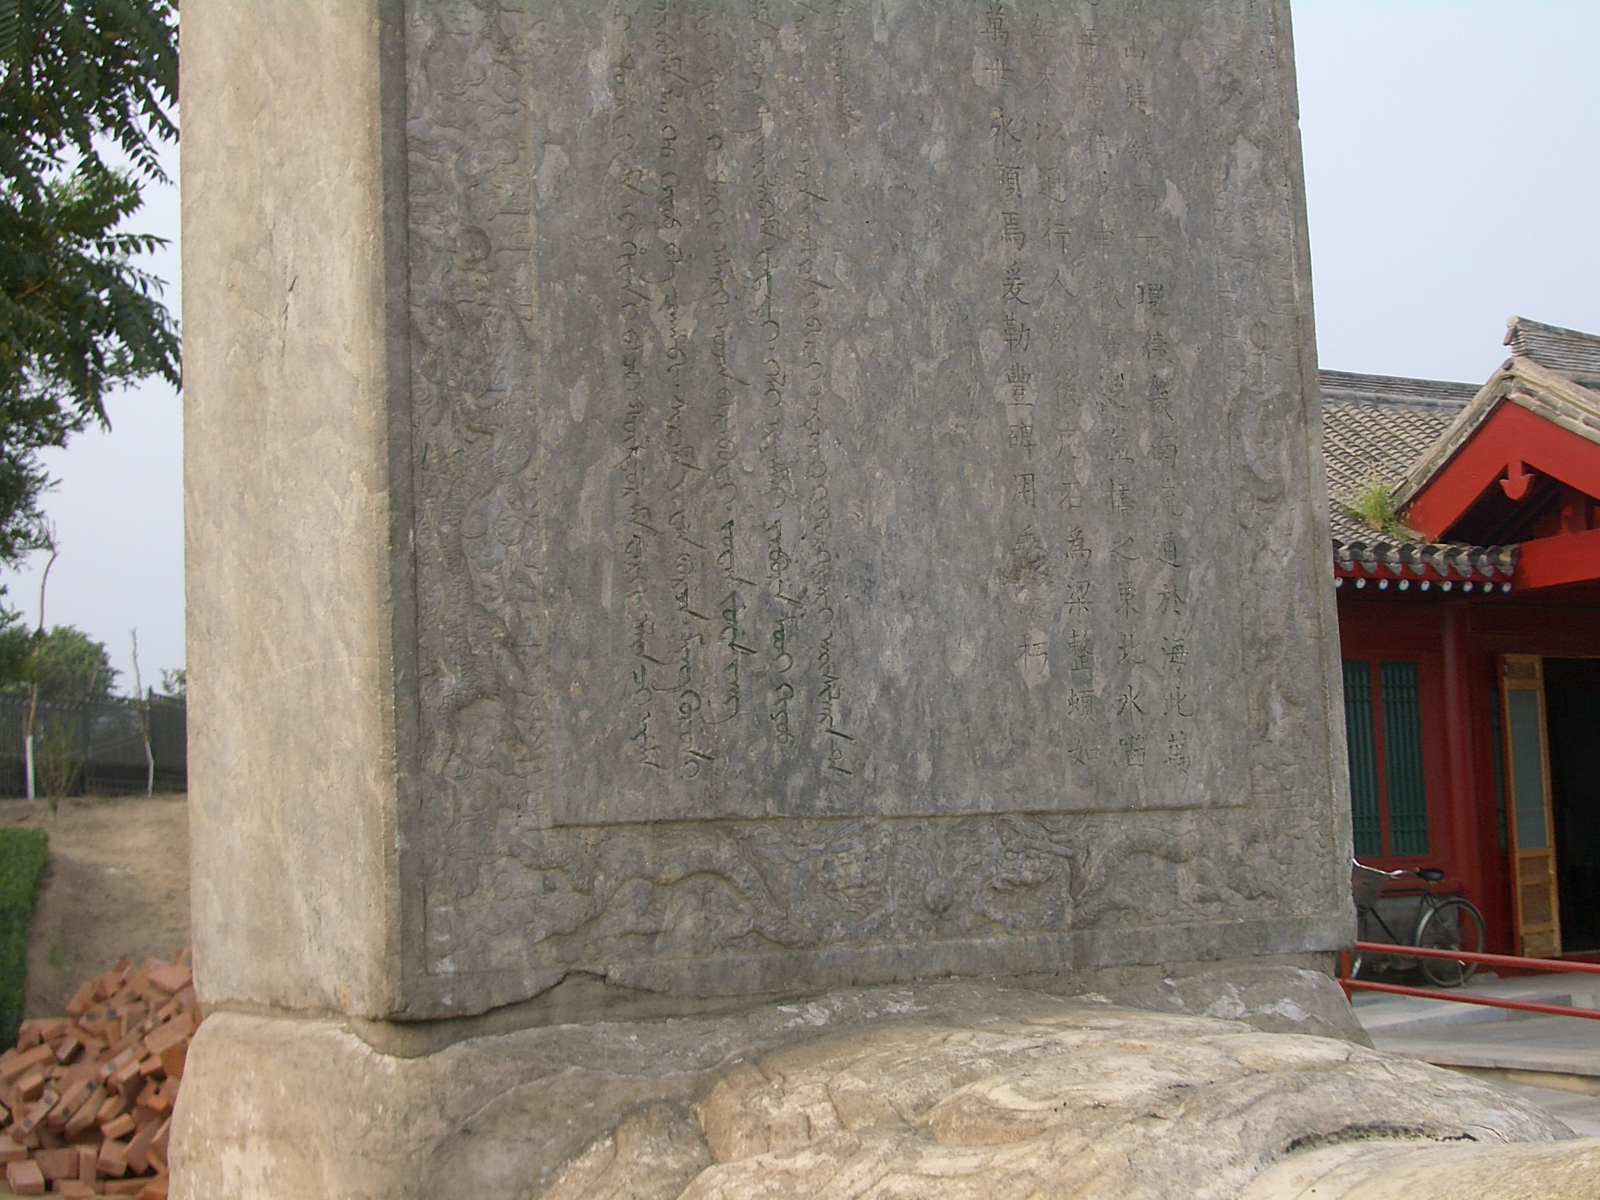 Photo of Kangxi Emperor stele by Vmenkov